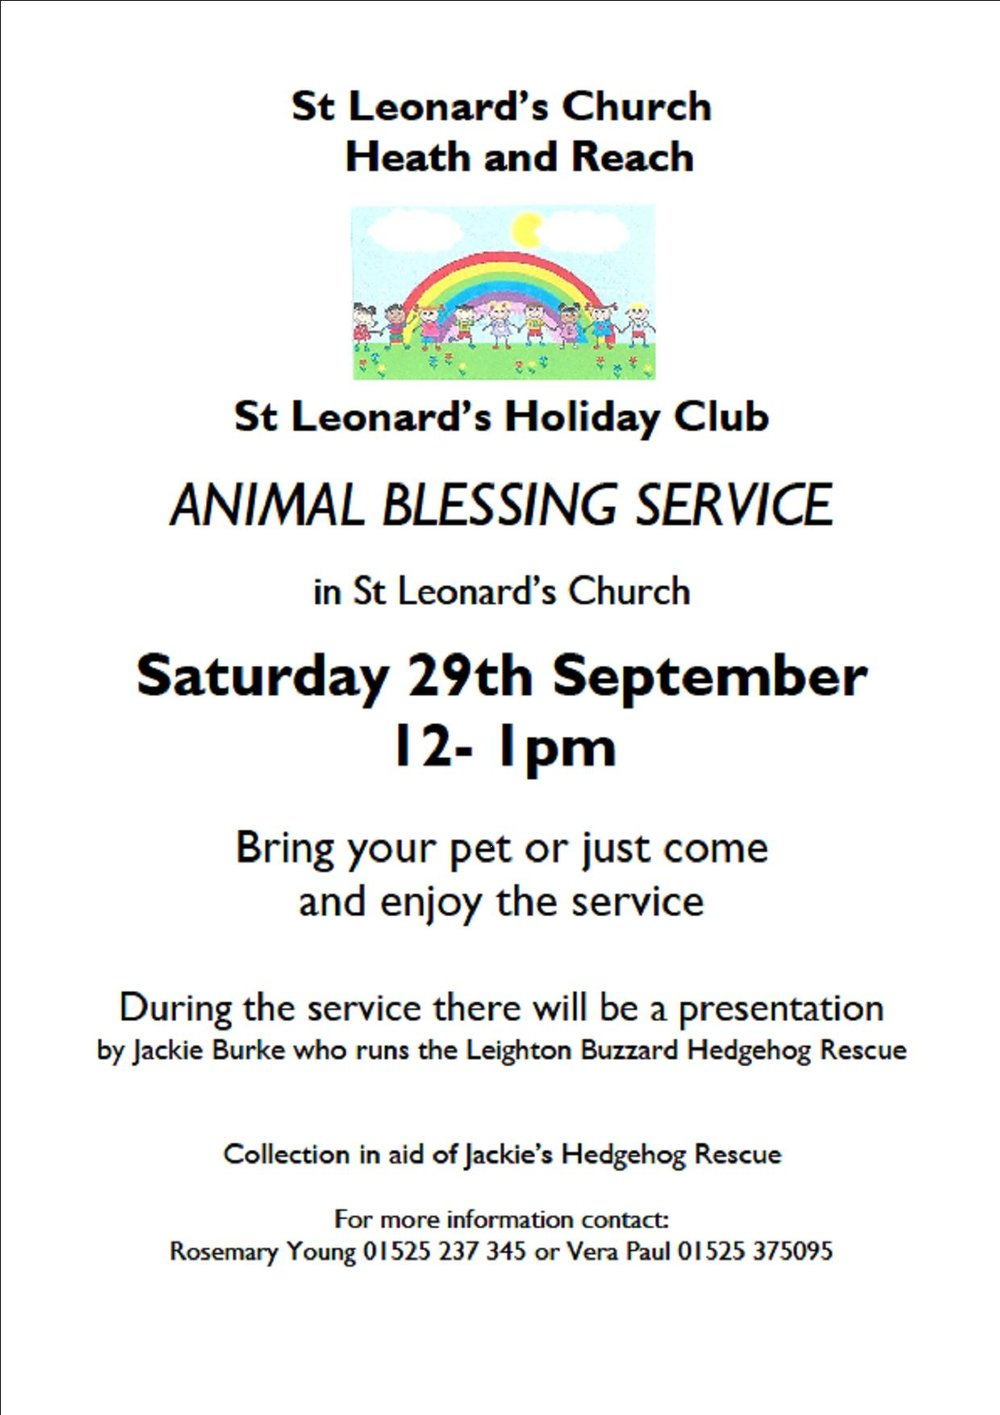 animal blessing service A4 poster sept 2018.jpg